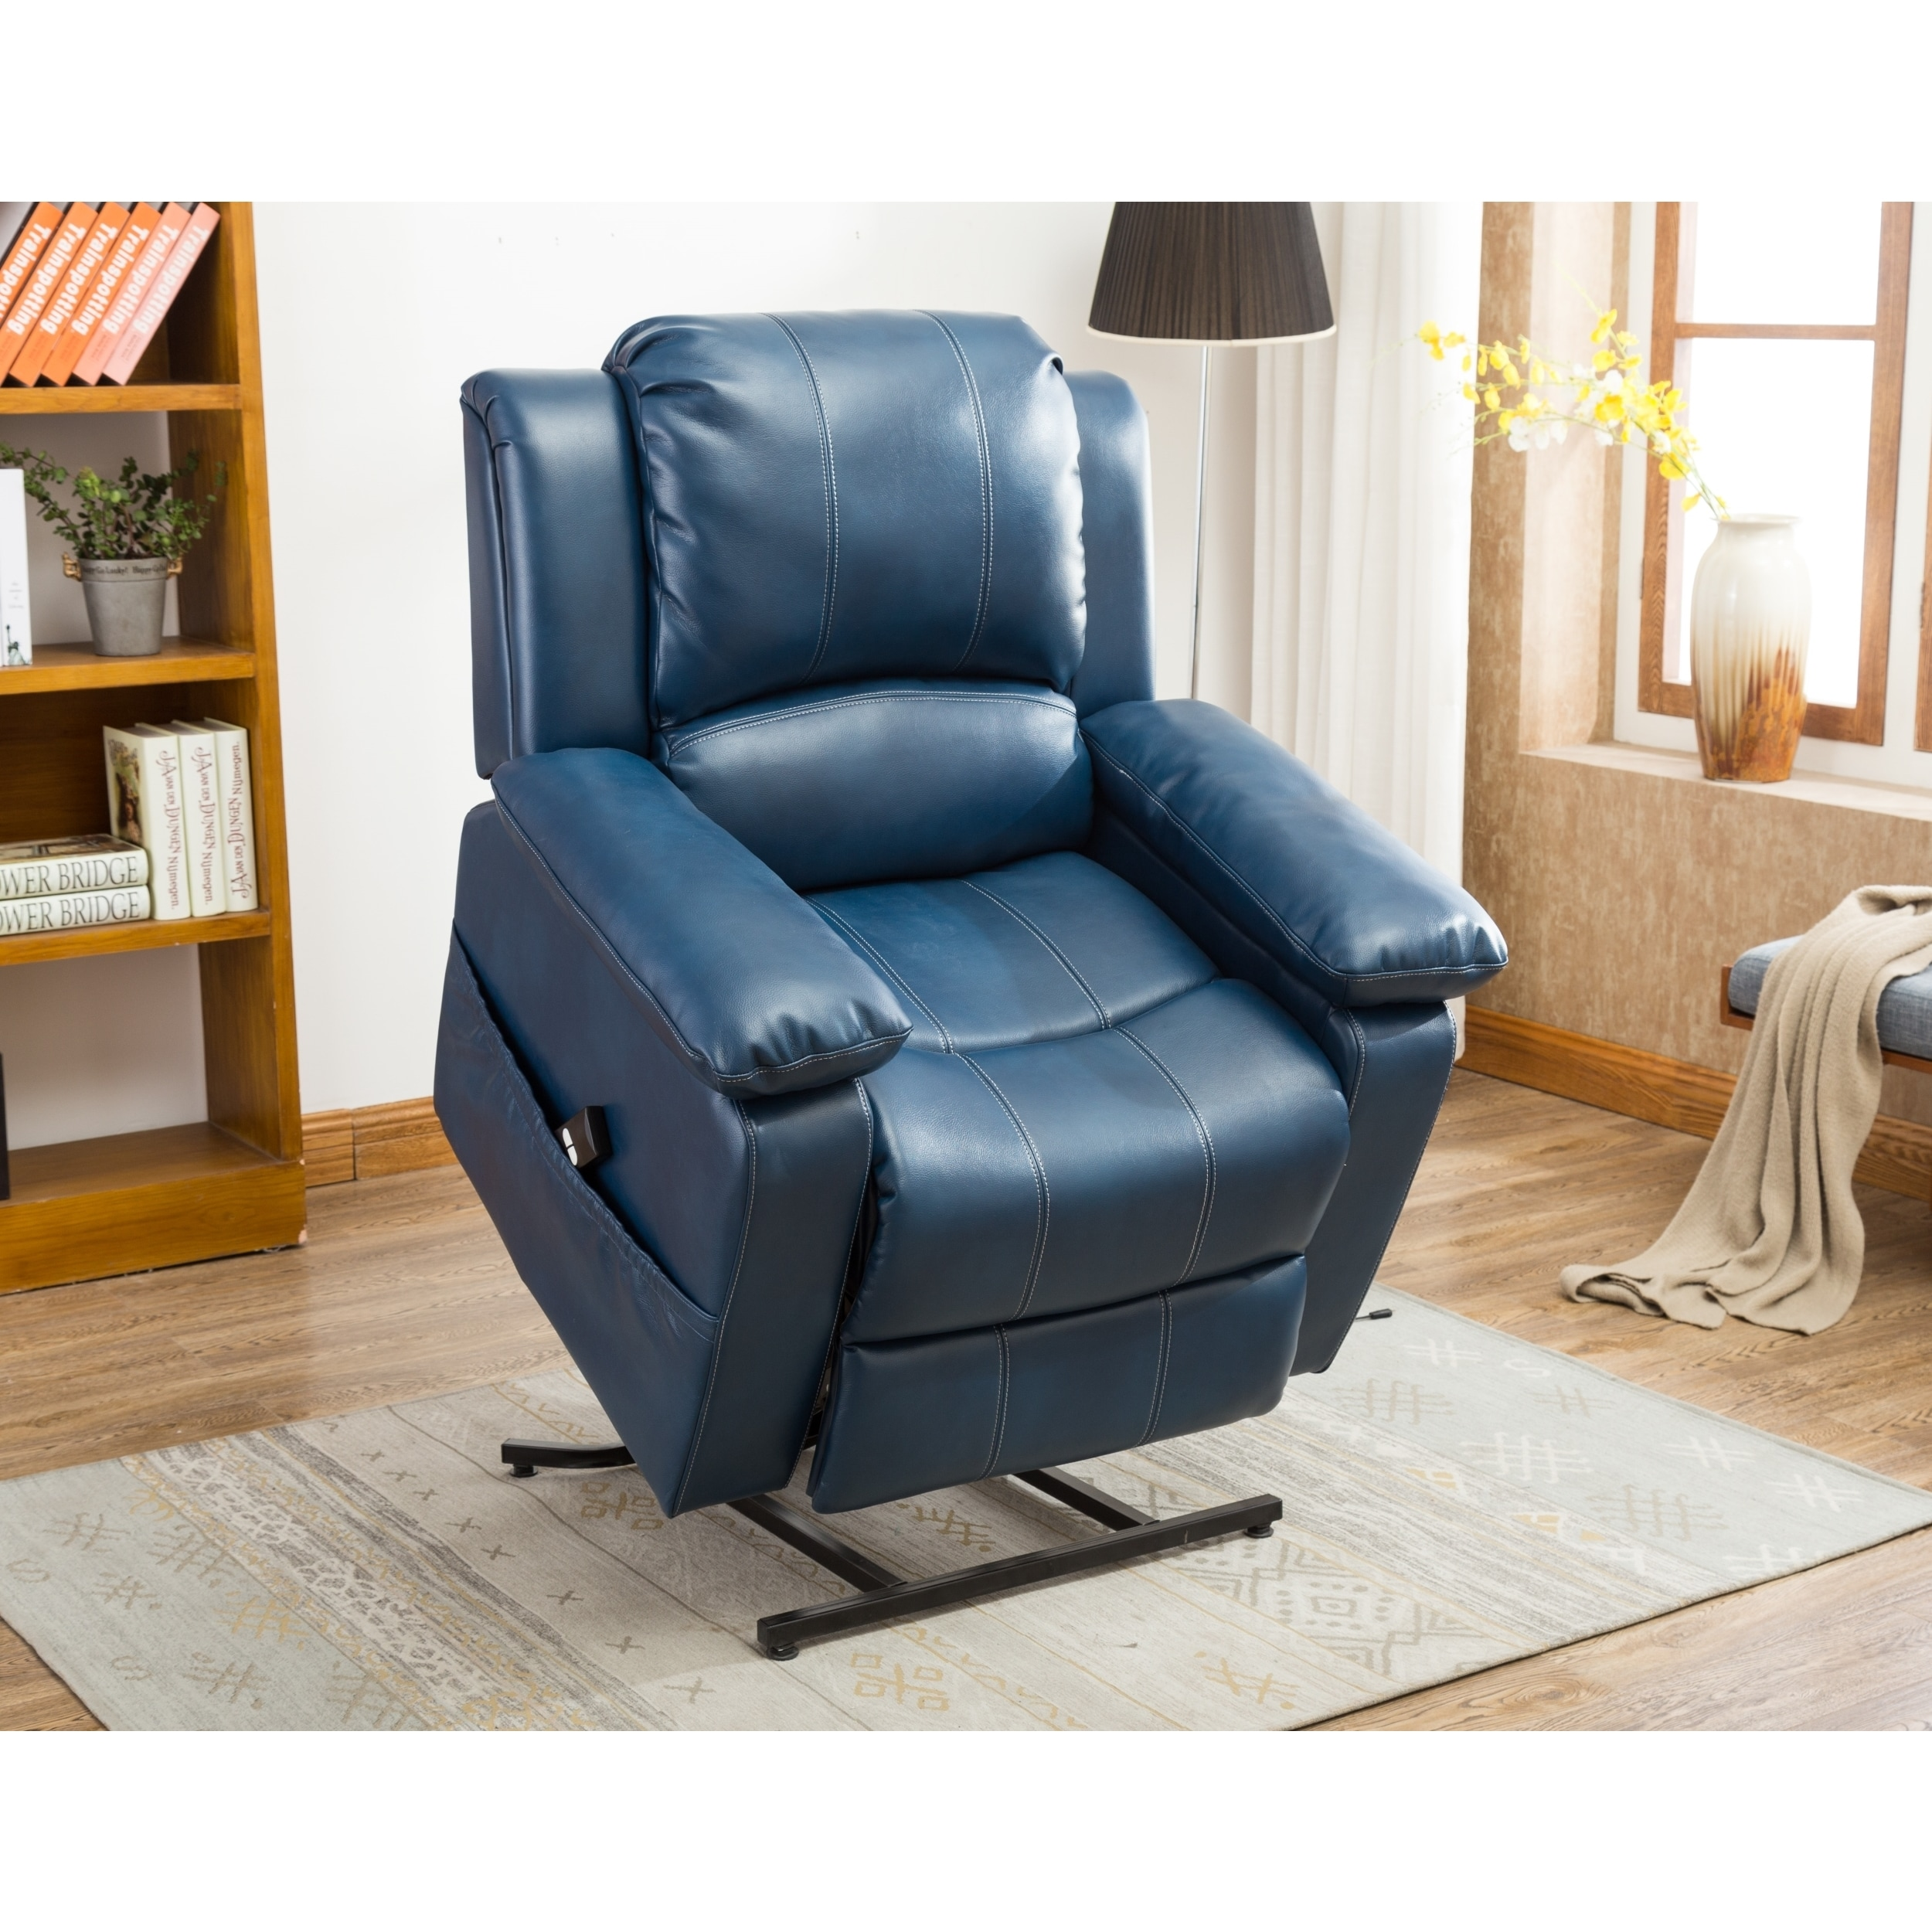 Blue Recliner Chairs  Rocking Recliners For Less